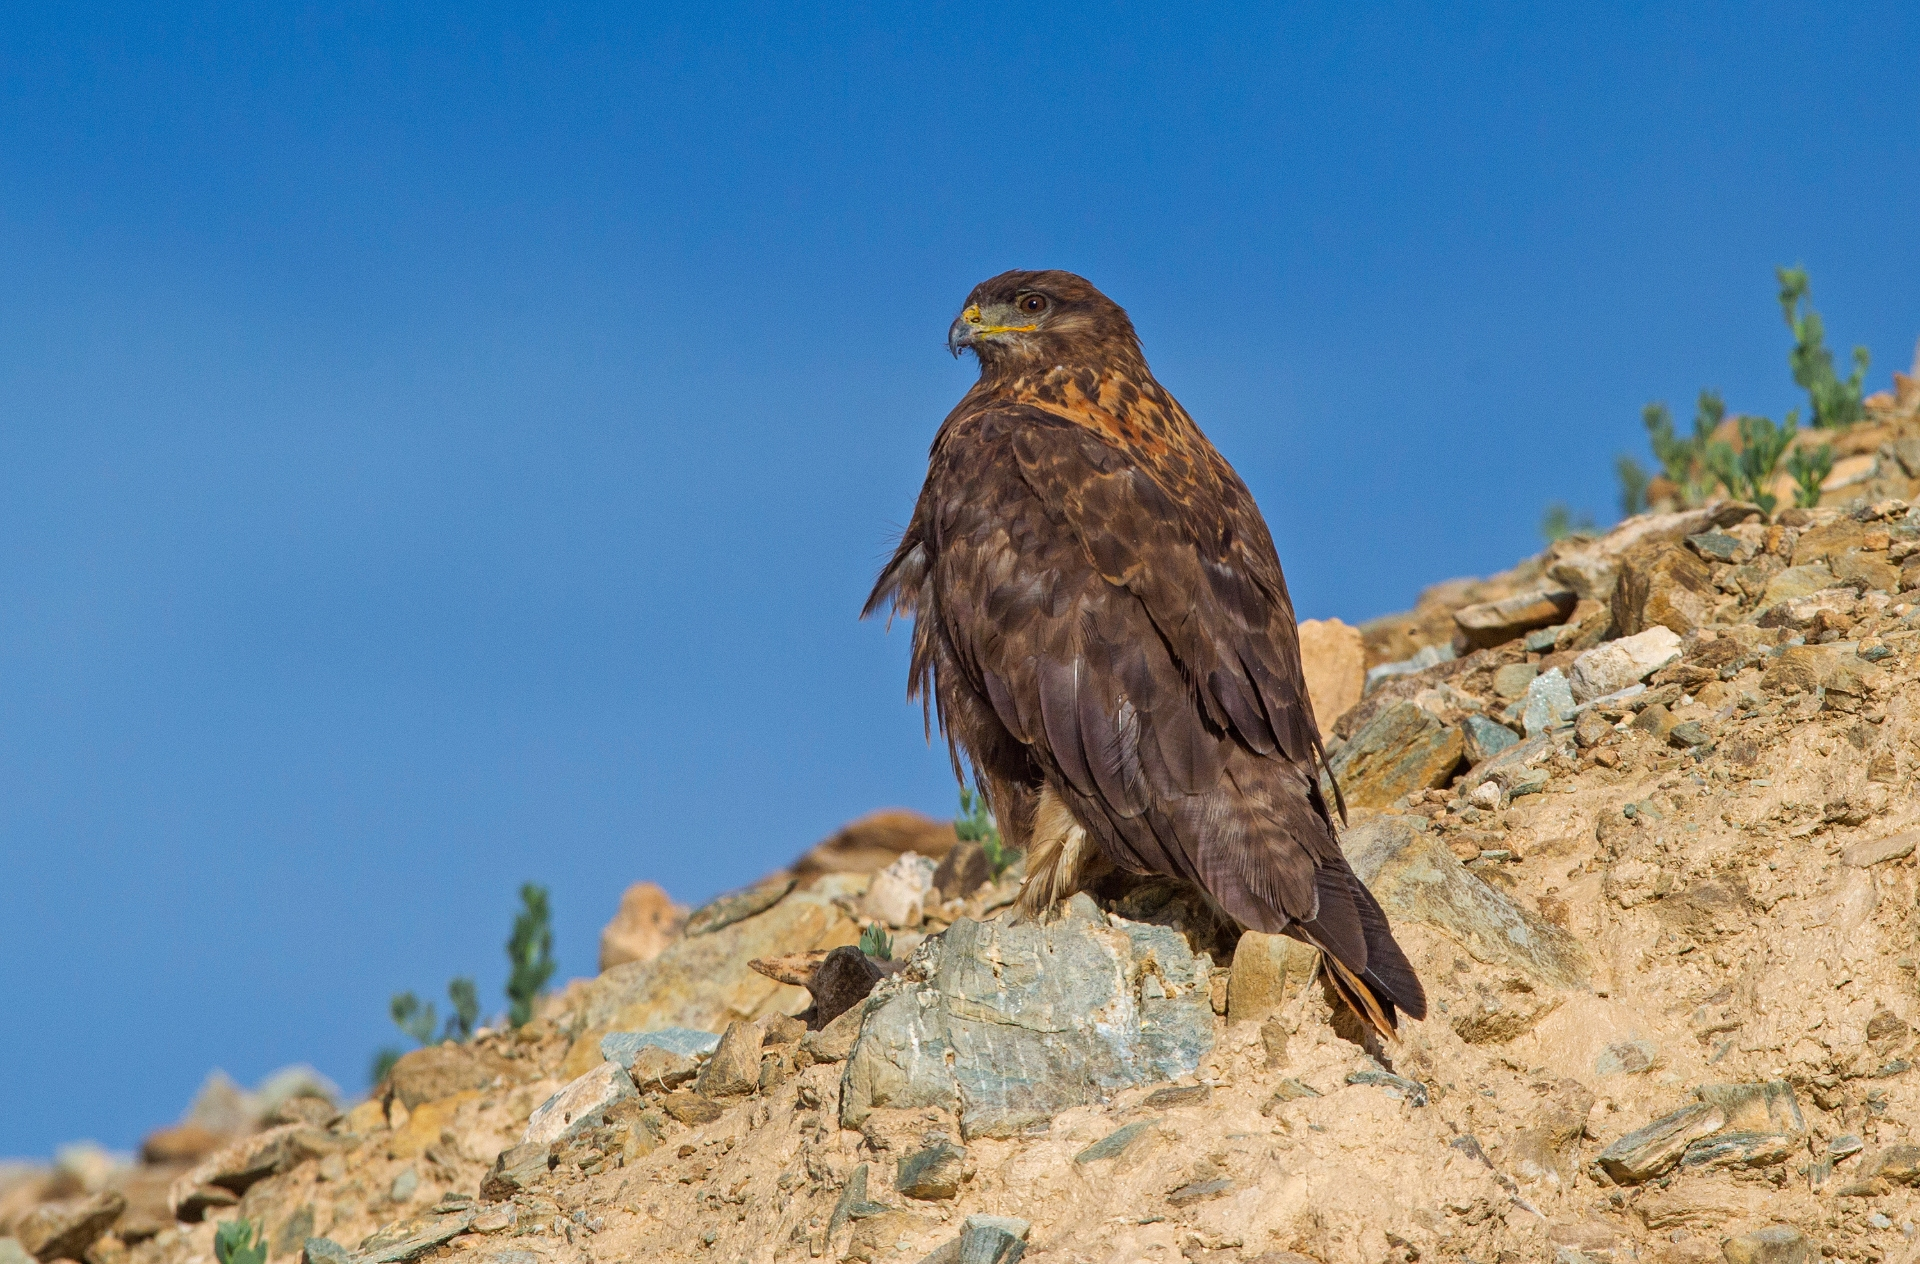 An upland buzzard looks for prey from a vantage point on the sheer hilly terrain of Ladakh. It mostly lives around large expansive open spaces. Photo: Dhritiman Mukherjee  The upland buzzard is largely a brown raptor, until it soars and reveals white patches on its wings. Cover Photo: Surya Ramachandran